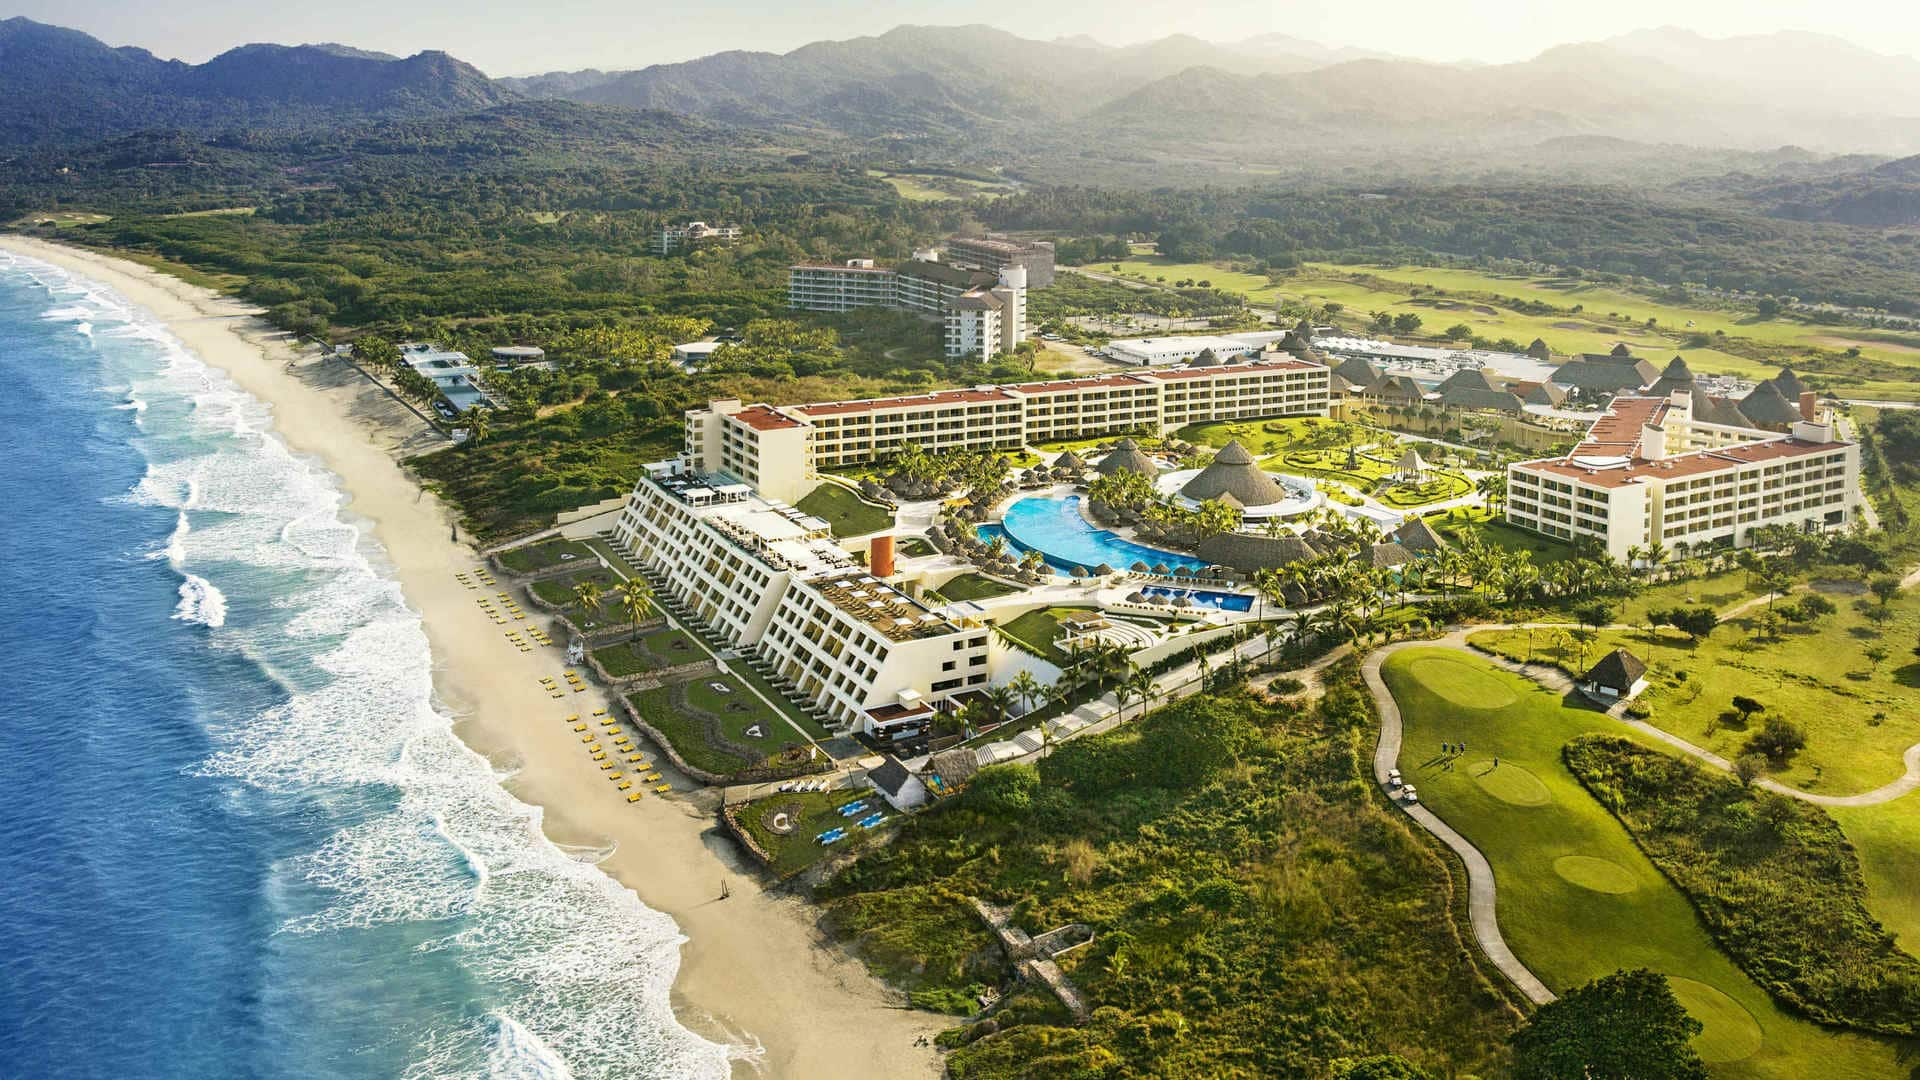 Iberostar Playa Mita resort